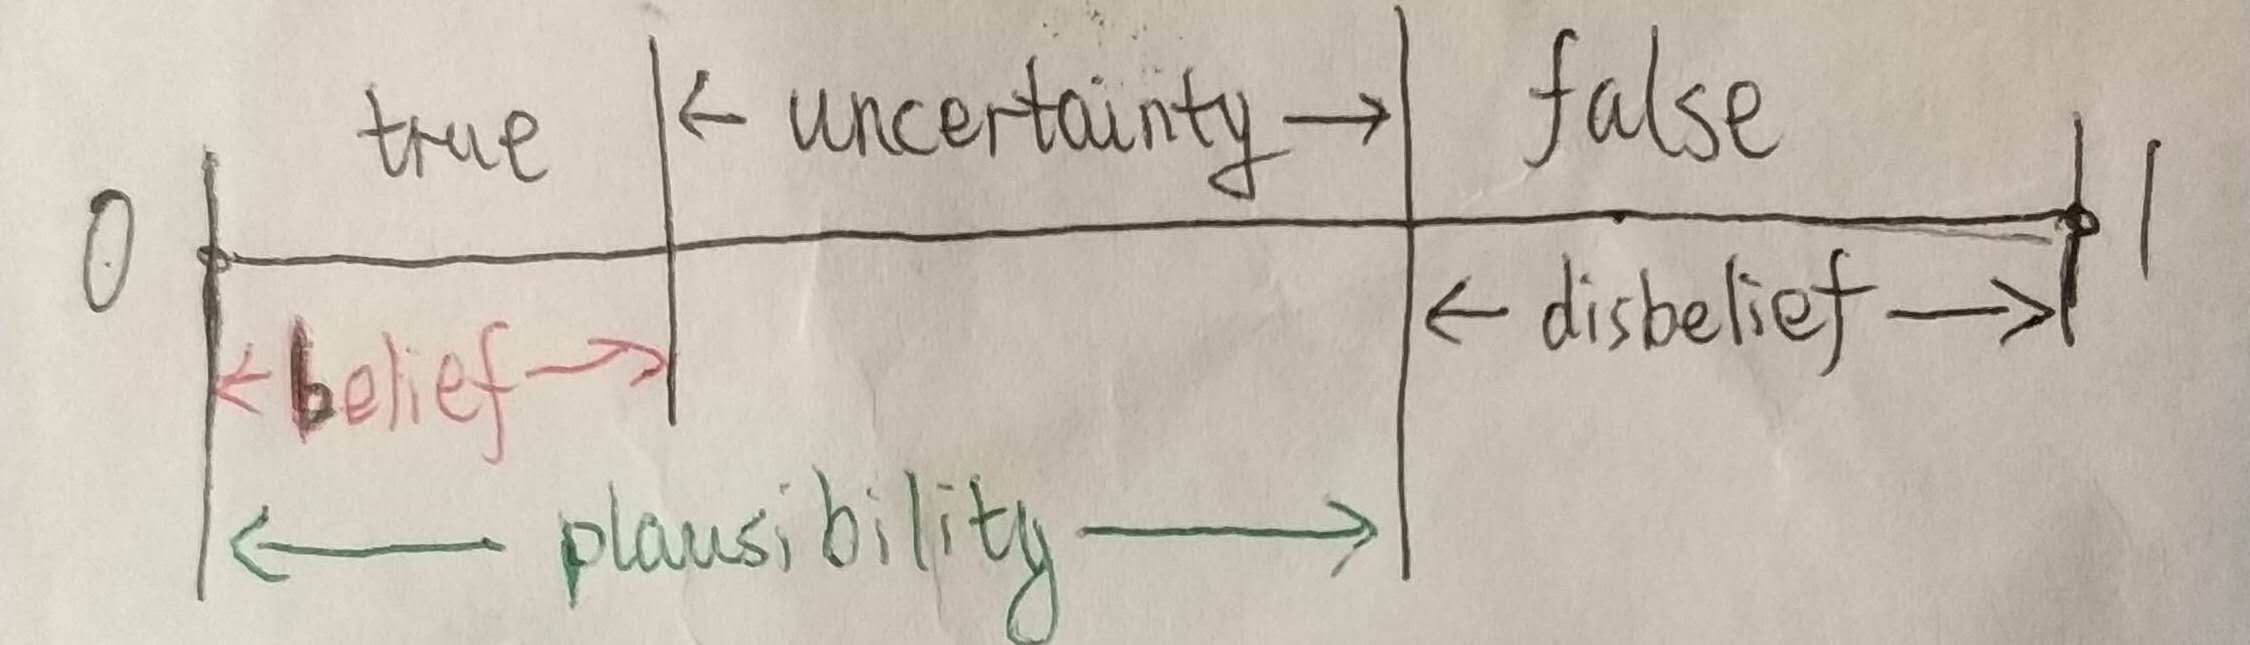 Belief, uncertainty and Plausibility